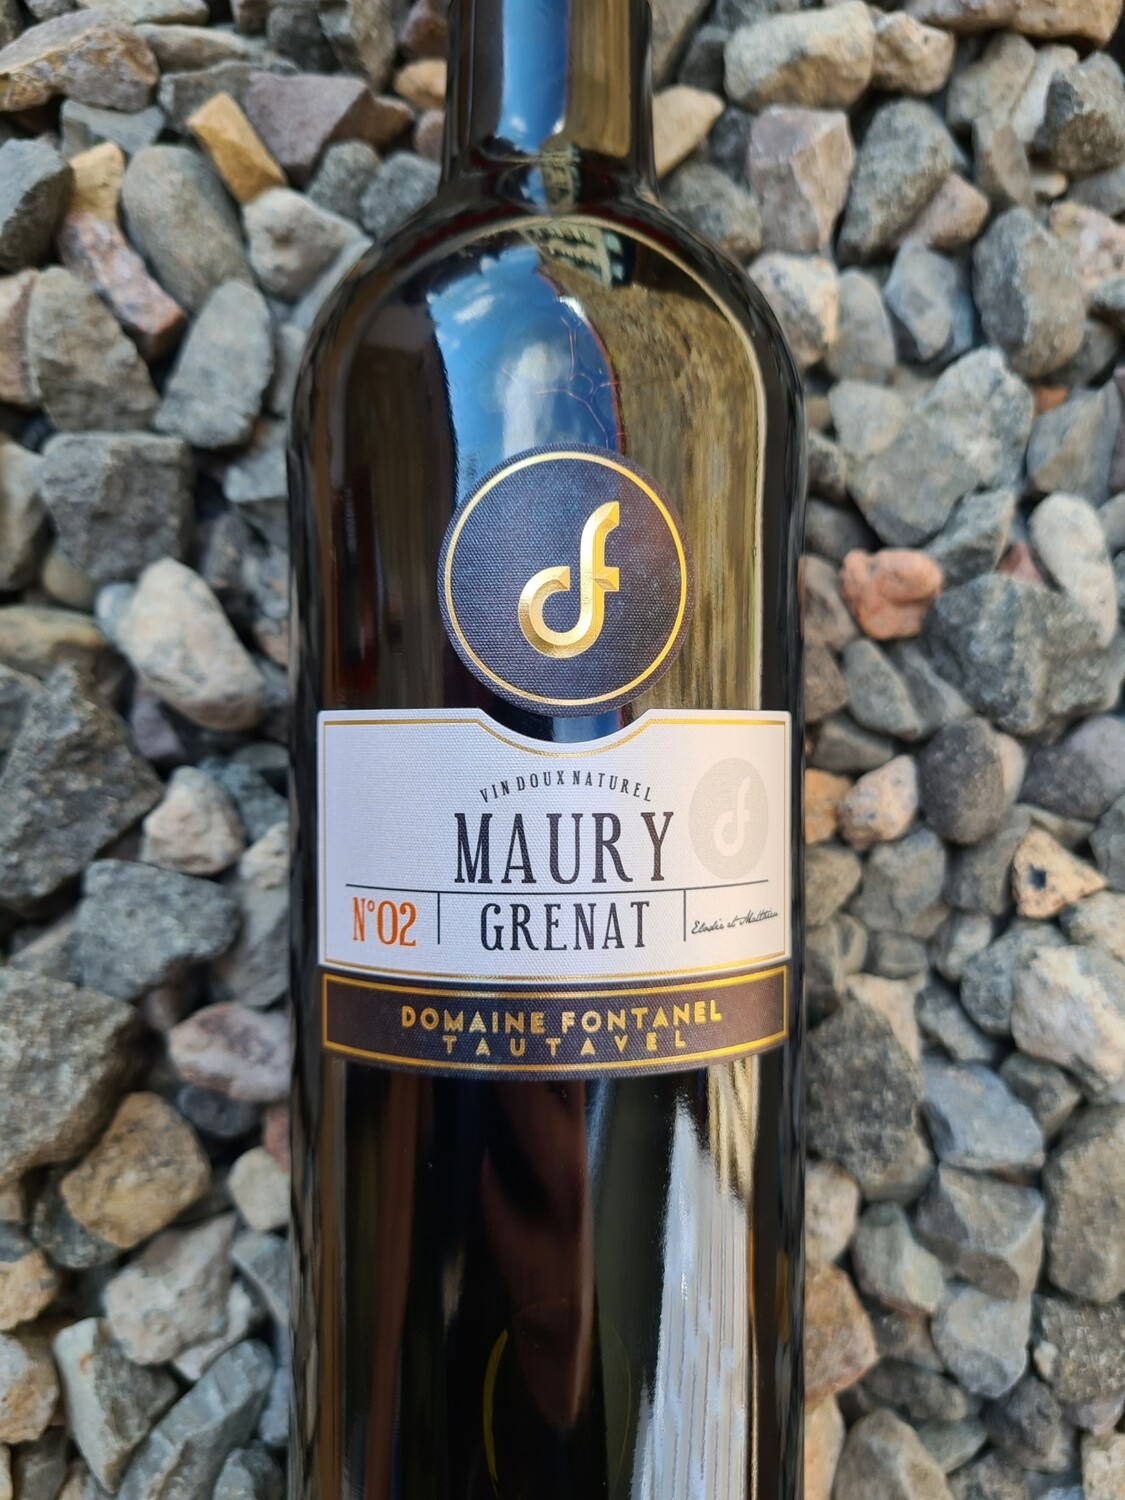 Maury Rouge 'Grenat' VDN Domaine Fontanel 2018